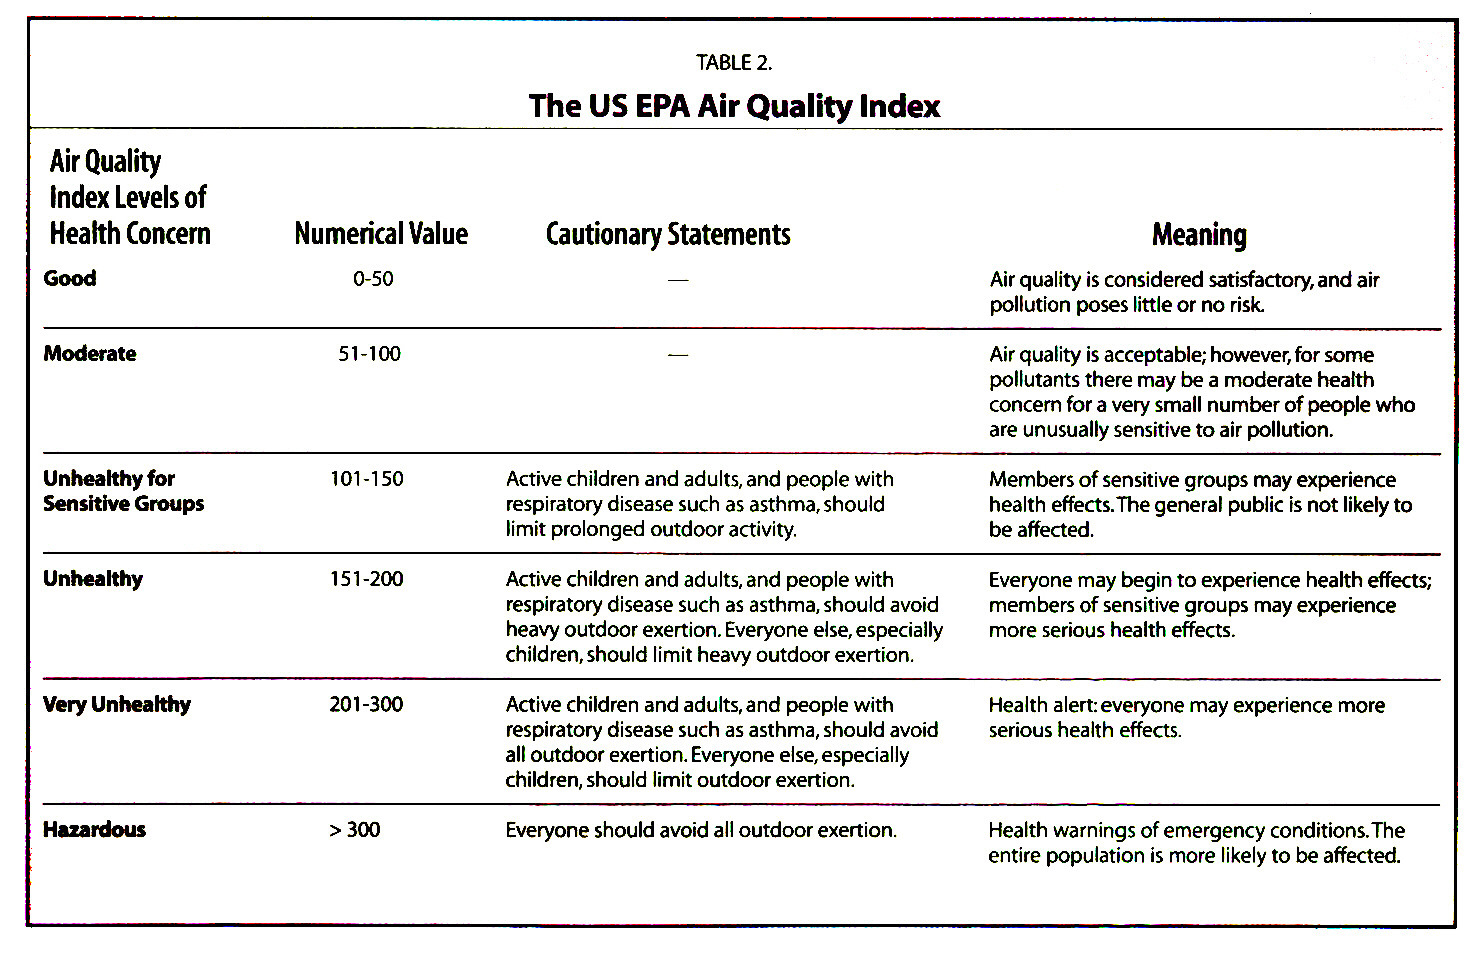 TABLE 2.The US EPA Air Quality Index